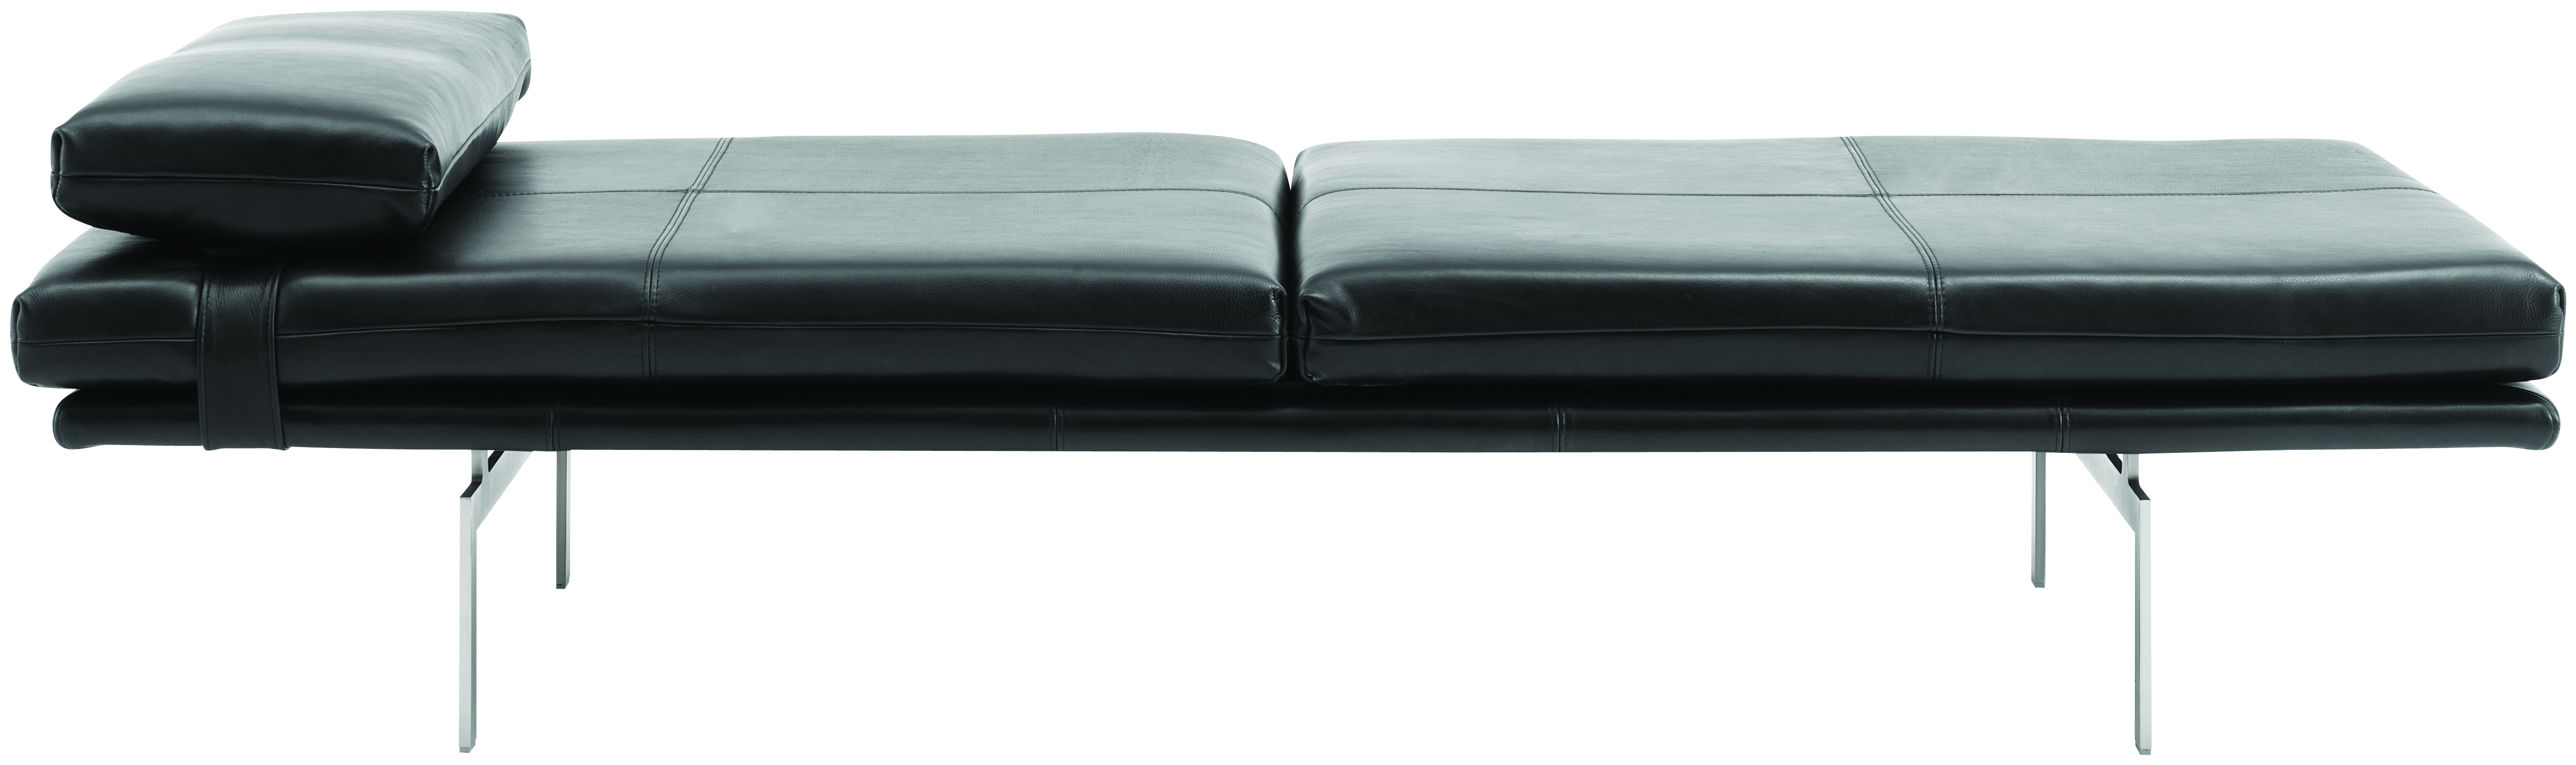 boconcept sleeper sofa review futon bed uk ottoman home co